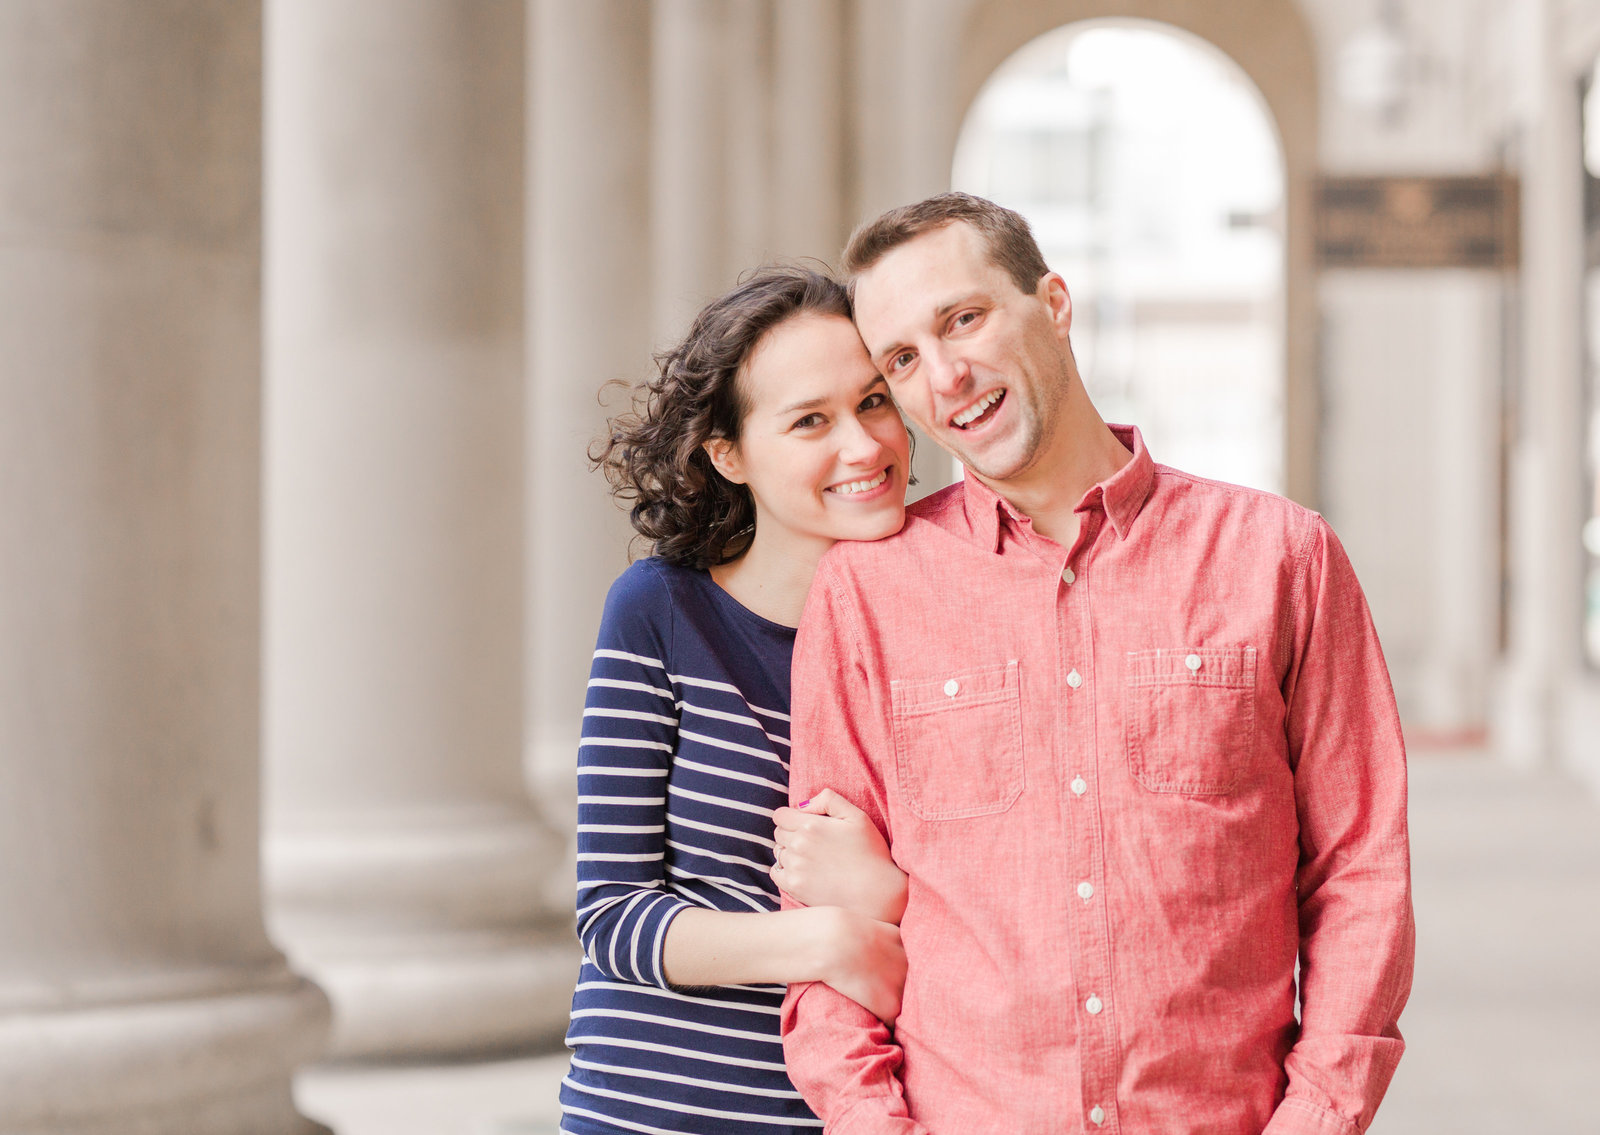 chicago-union-station-engagement-session-allison-ewing-photography-007-1